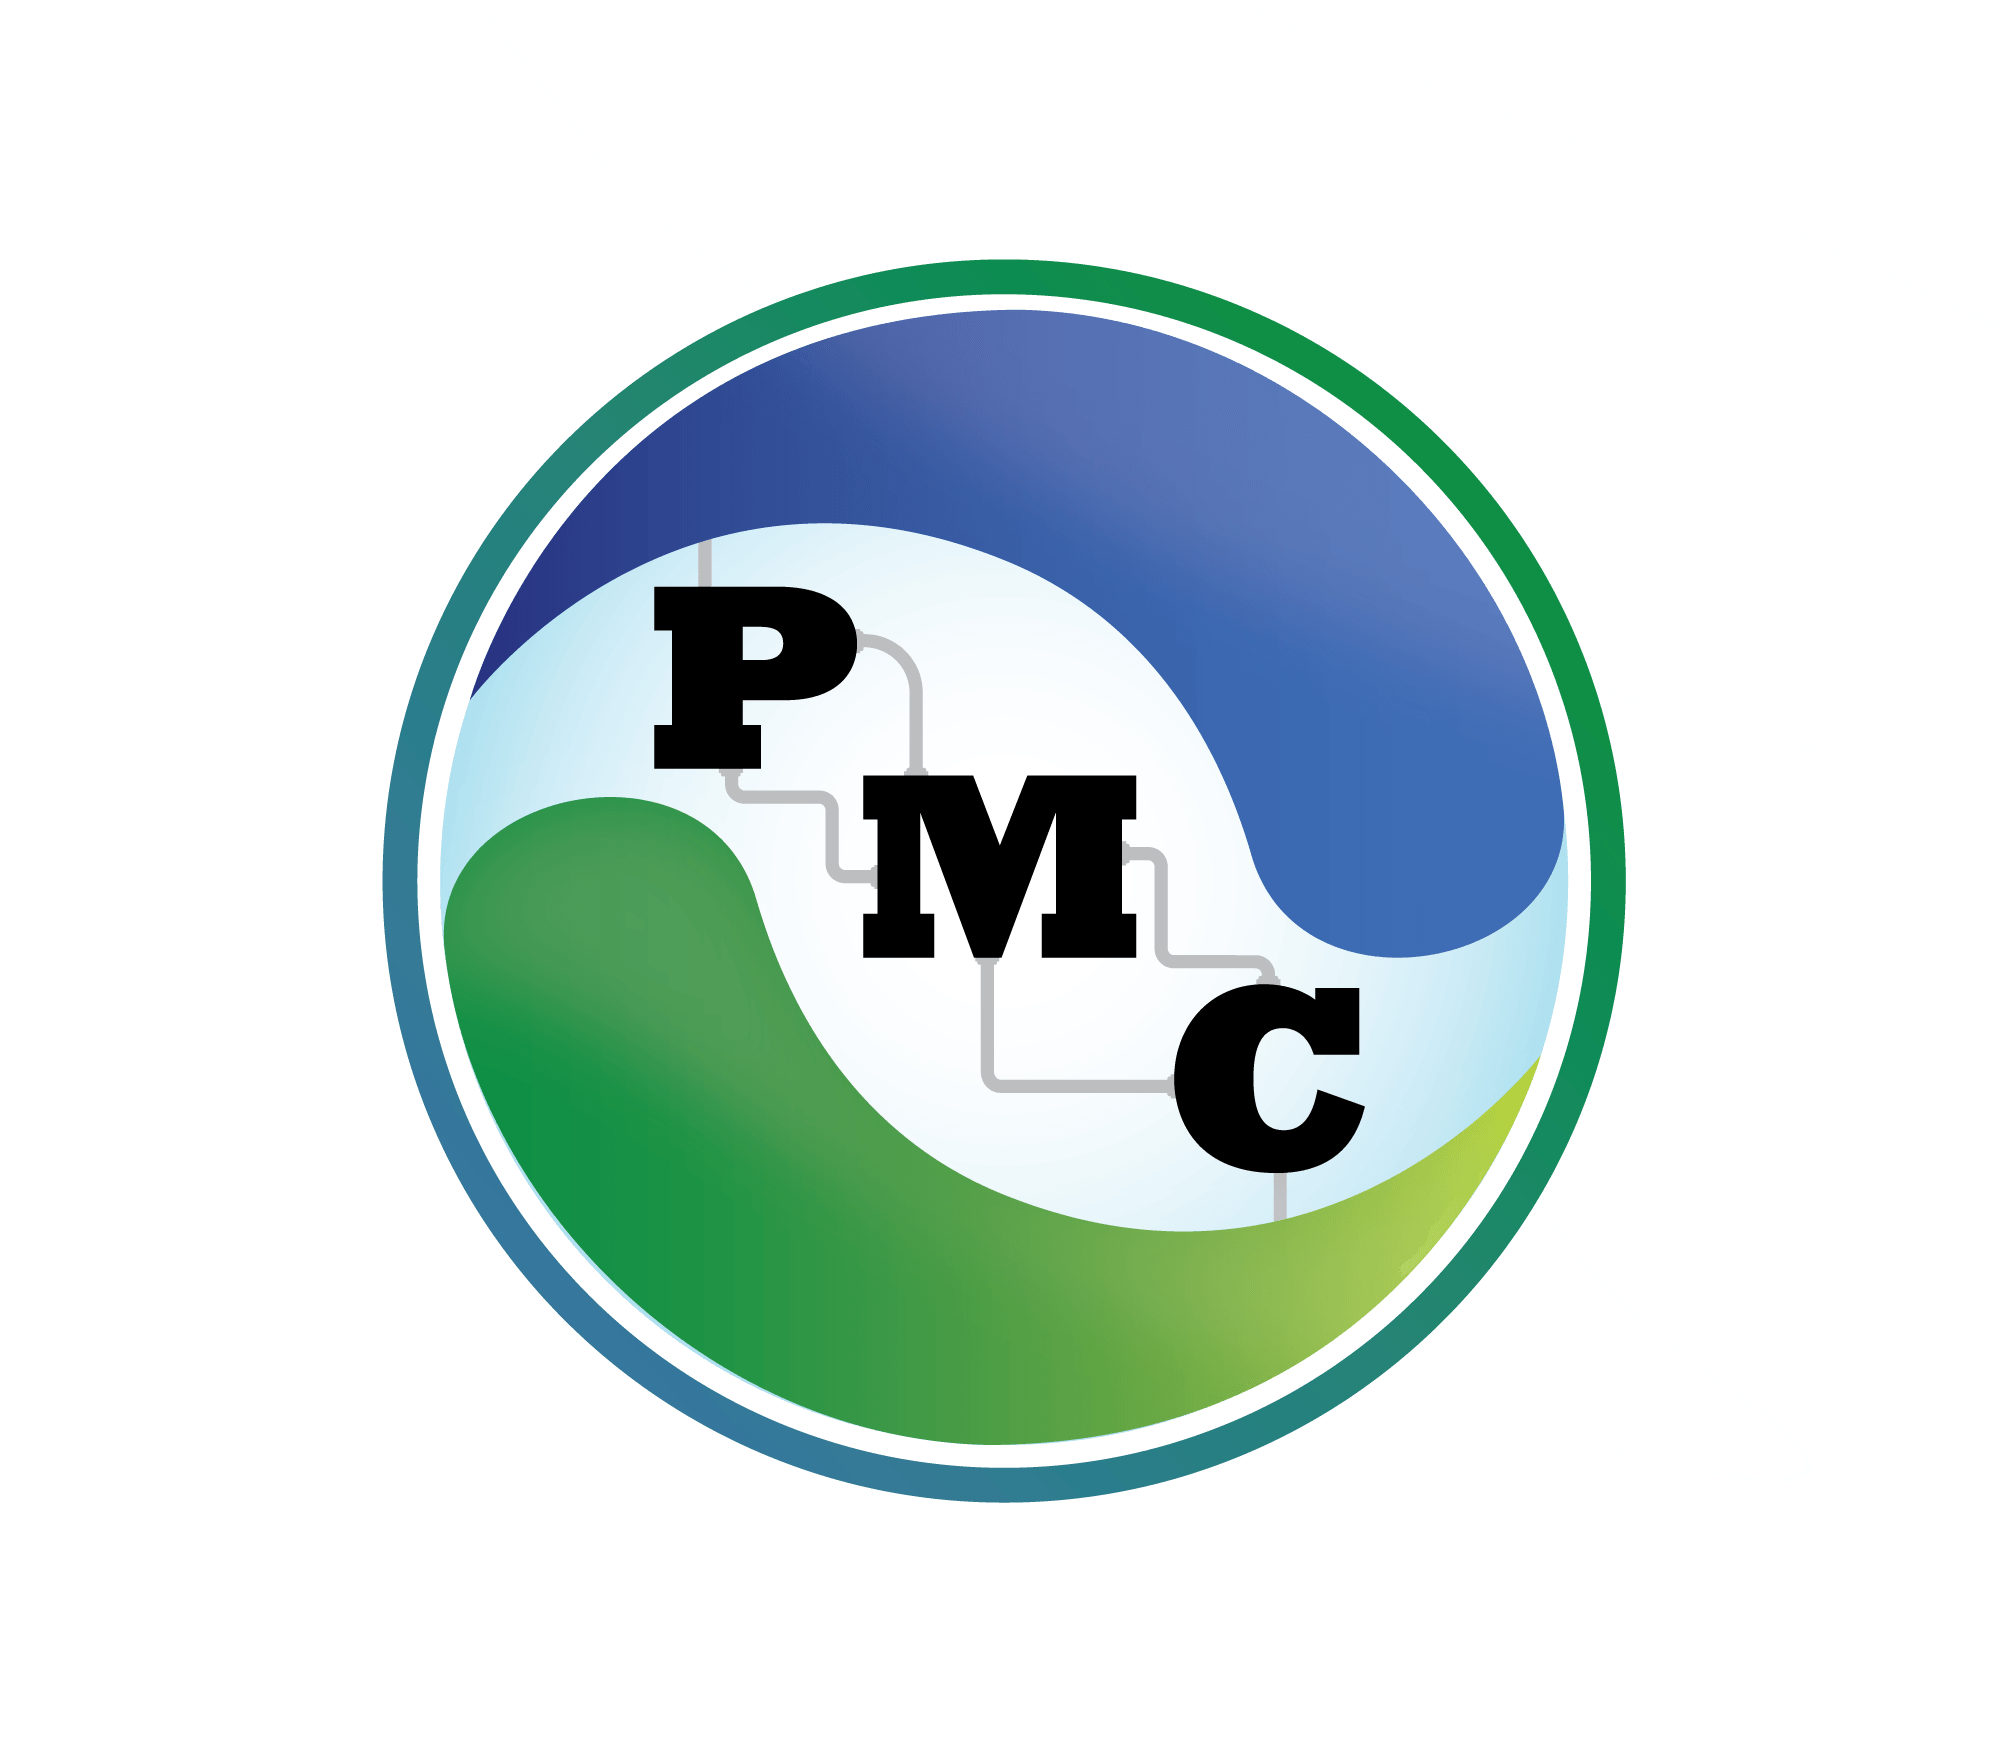 Pumps, Motors and Controls logo